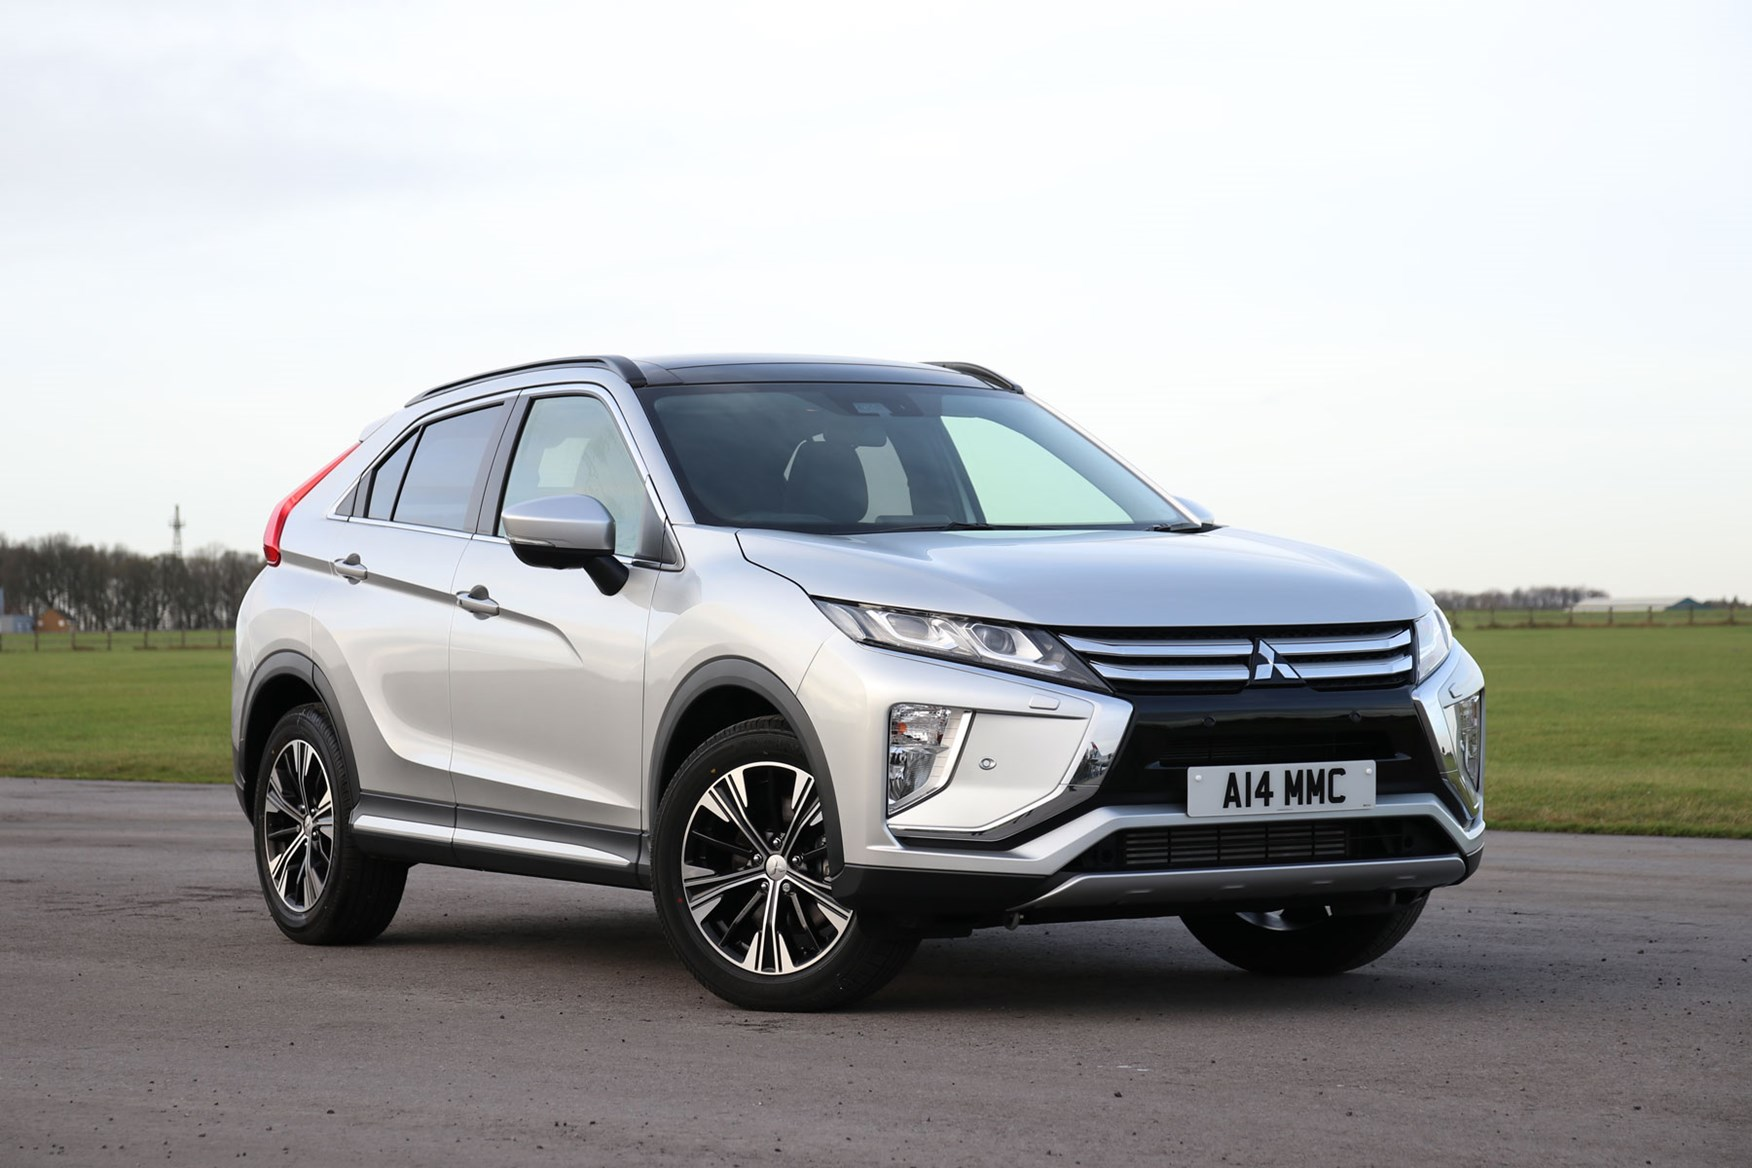 Mitsubishi Eclipse Cross (2019) Engines, Drive & Performance